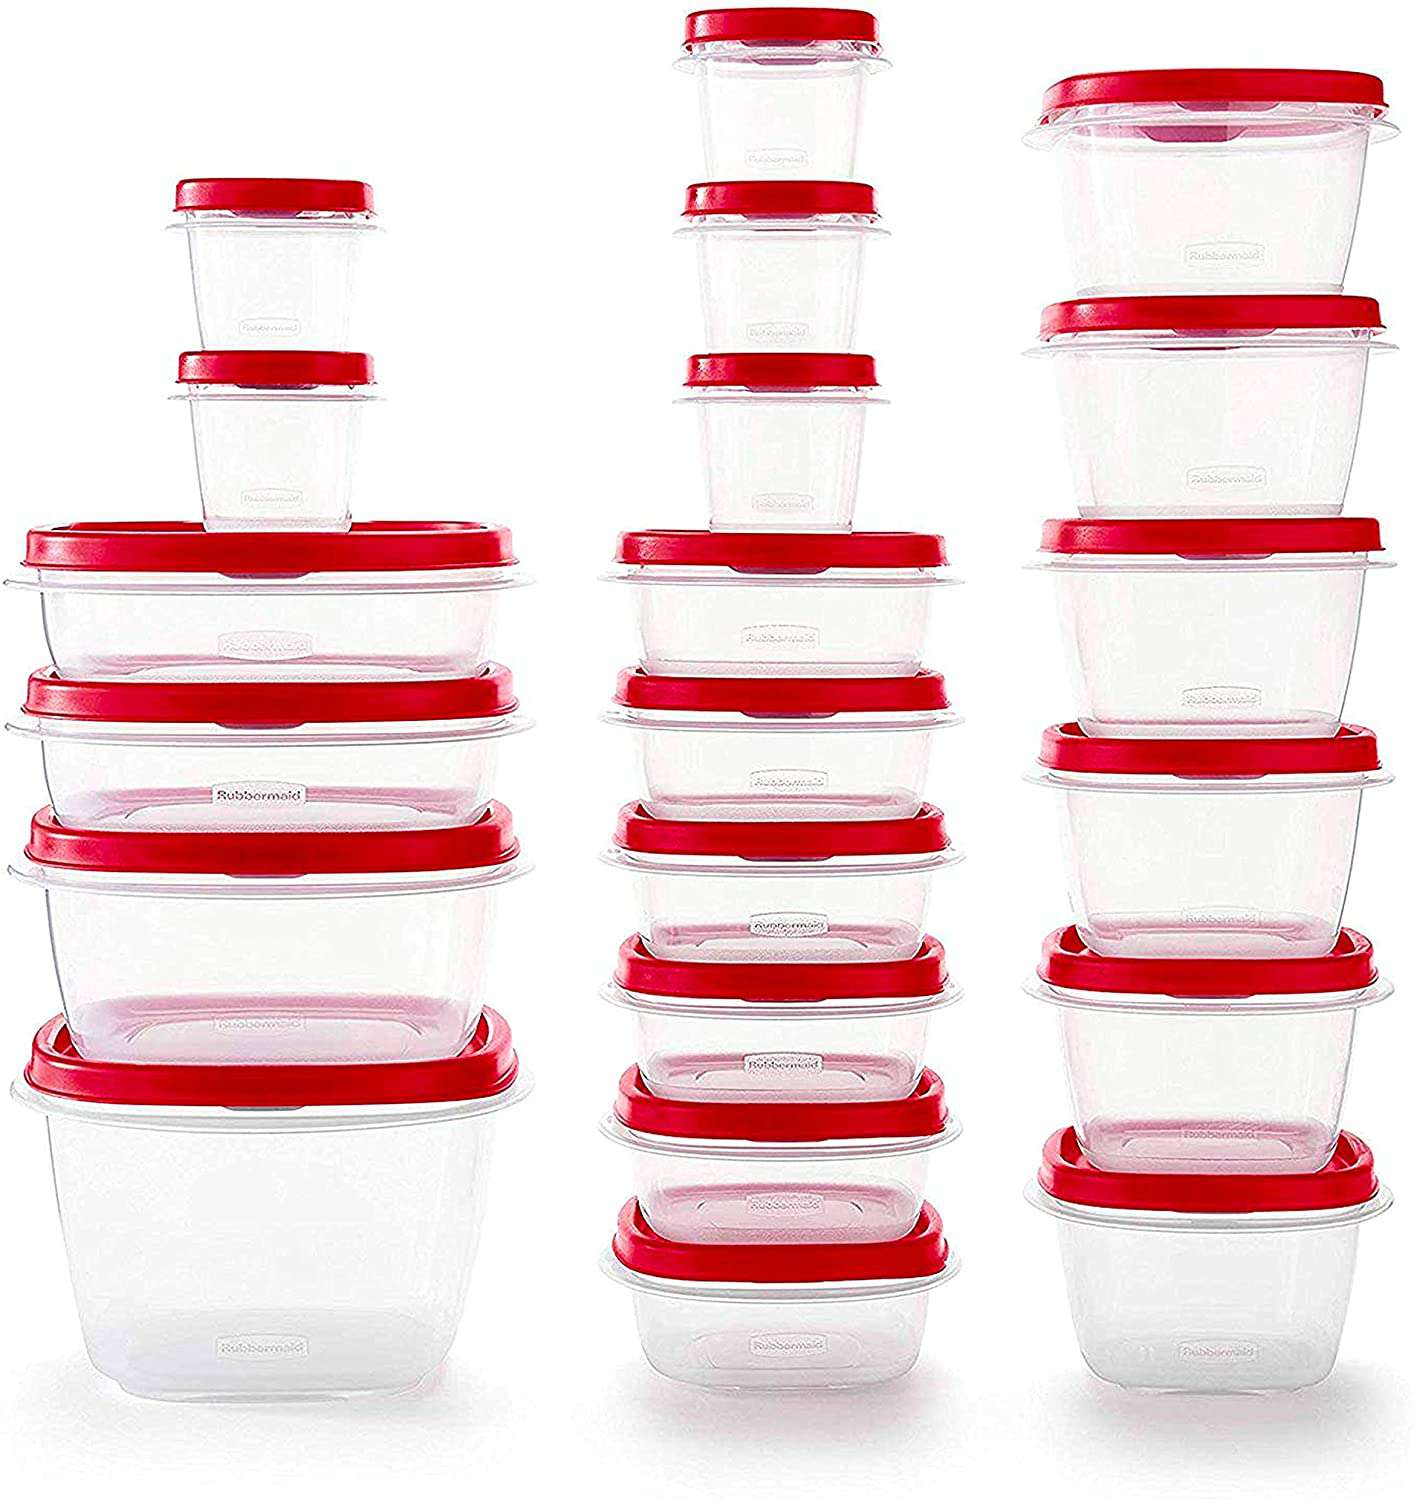 Rubbermaid 42-Piece Easy Find Vented Lids Food Storage Containers